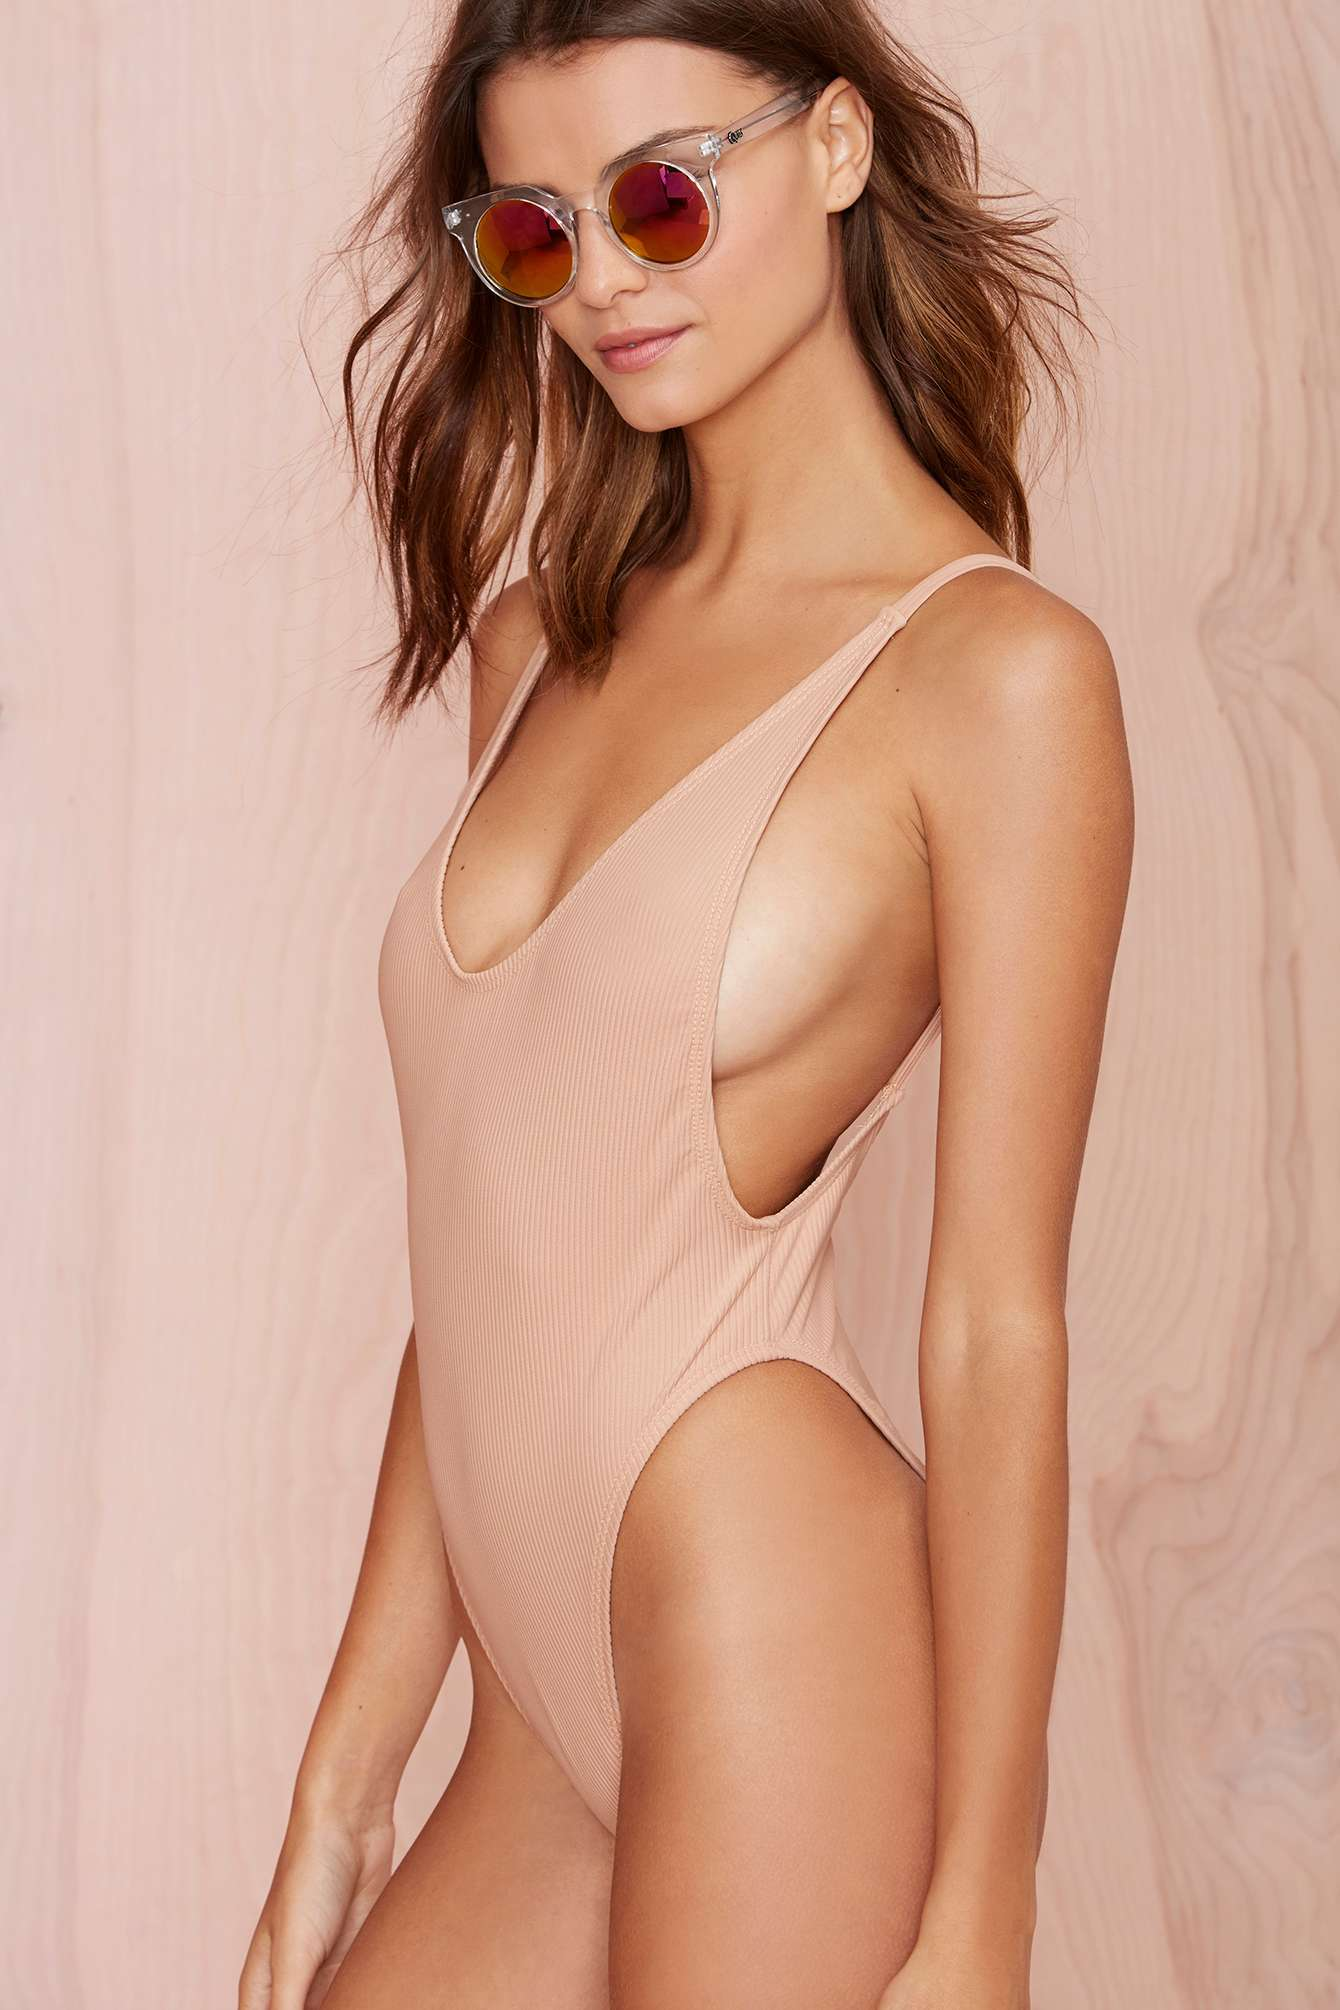 Nasty Gal Swimwear 2014 Collection forecast